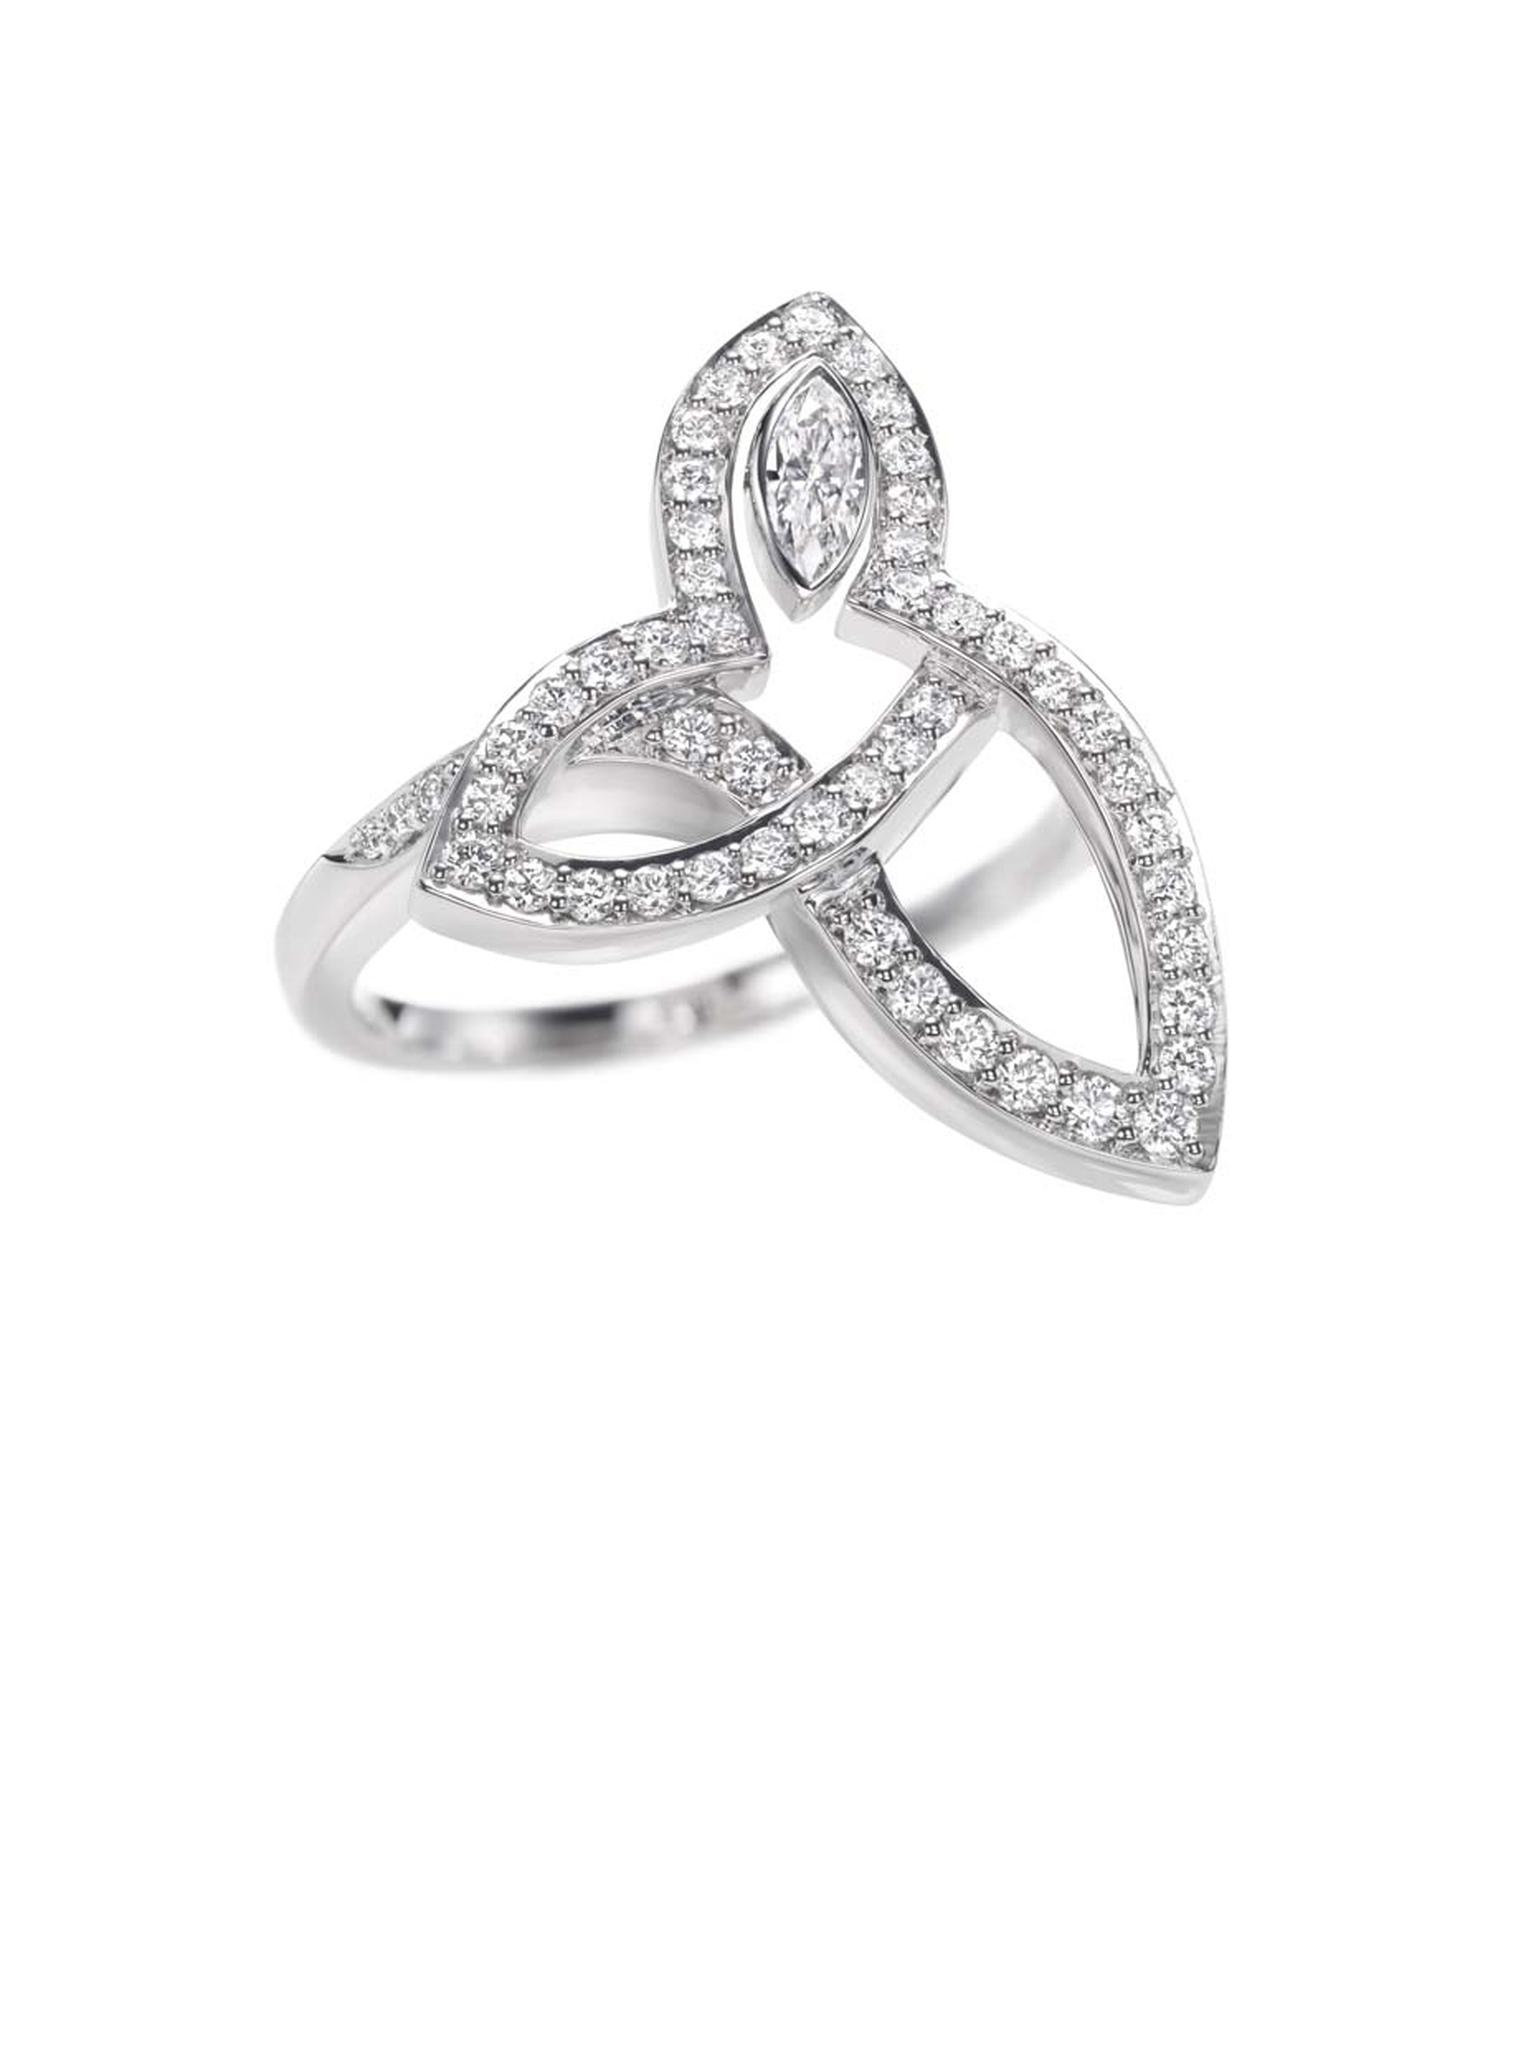 16e5db788d106 The famous Harry Winston Cluster design has evolved over the decades ...